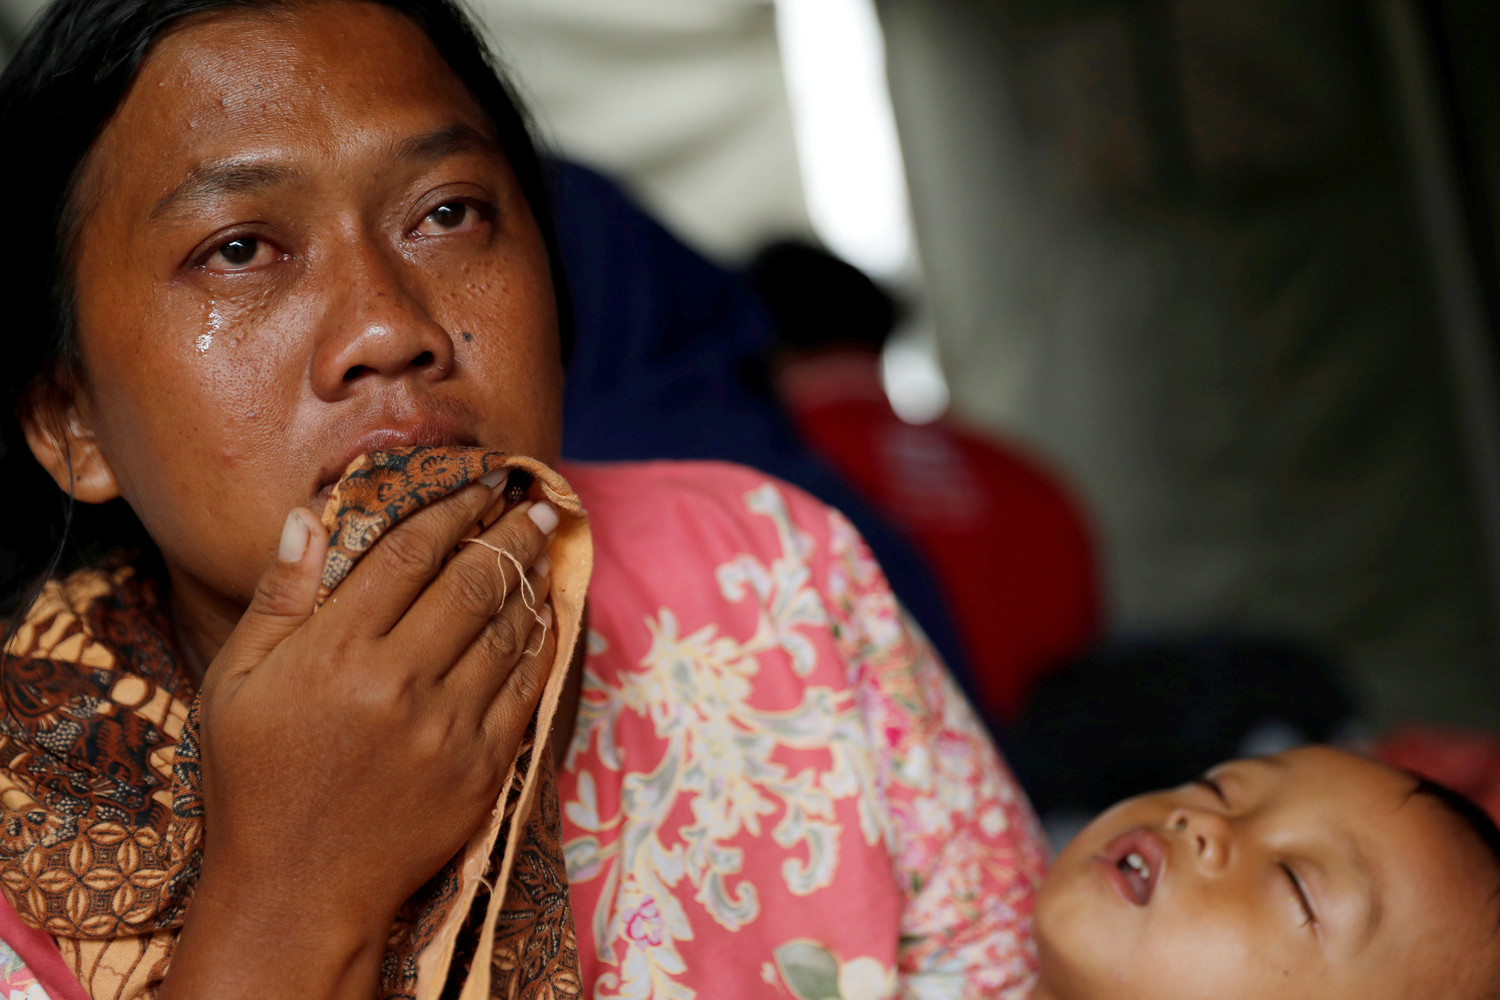 An Indonesian woman cries as she holds a child Dec. 25 at an evacuation center in Labuhan after a tsunami hit two islands. Indonesian authorities asked people to avoid the coast in areas where the tsunami killed more than 400 people.